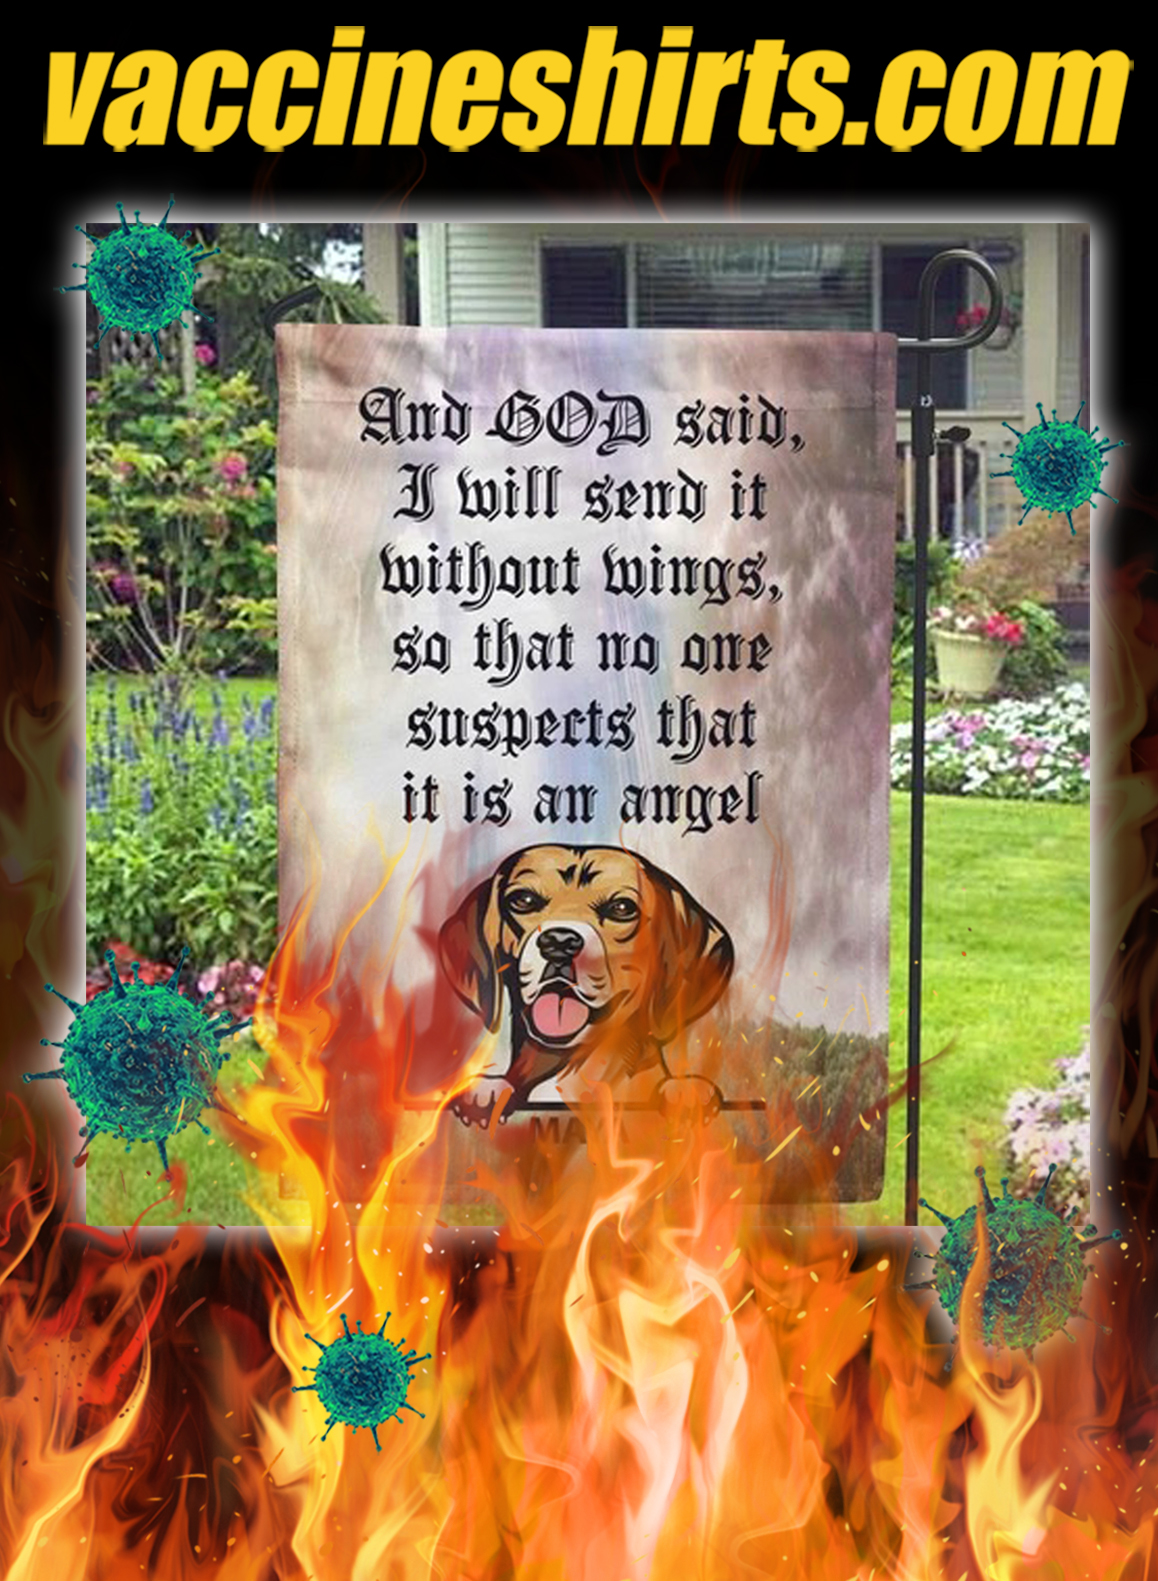 Personalized custom name Dog And god said i will send it flag- pic 1